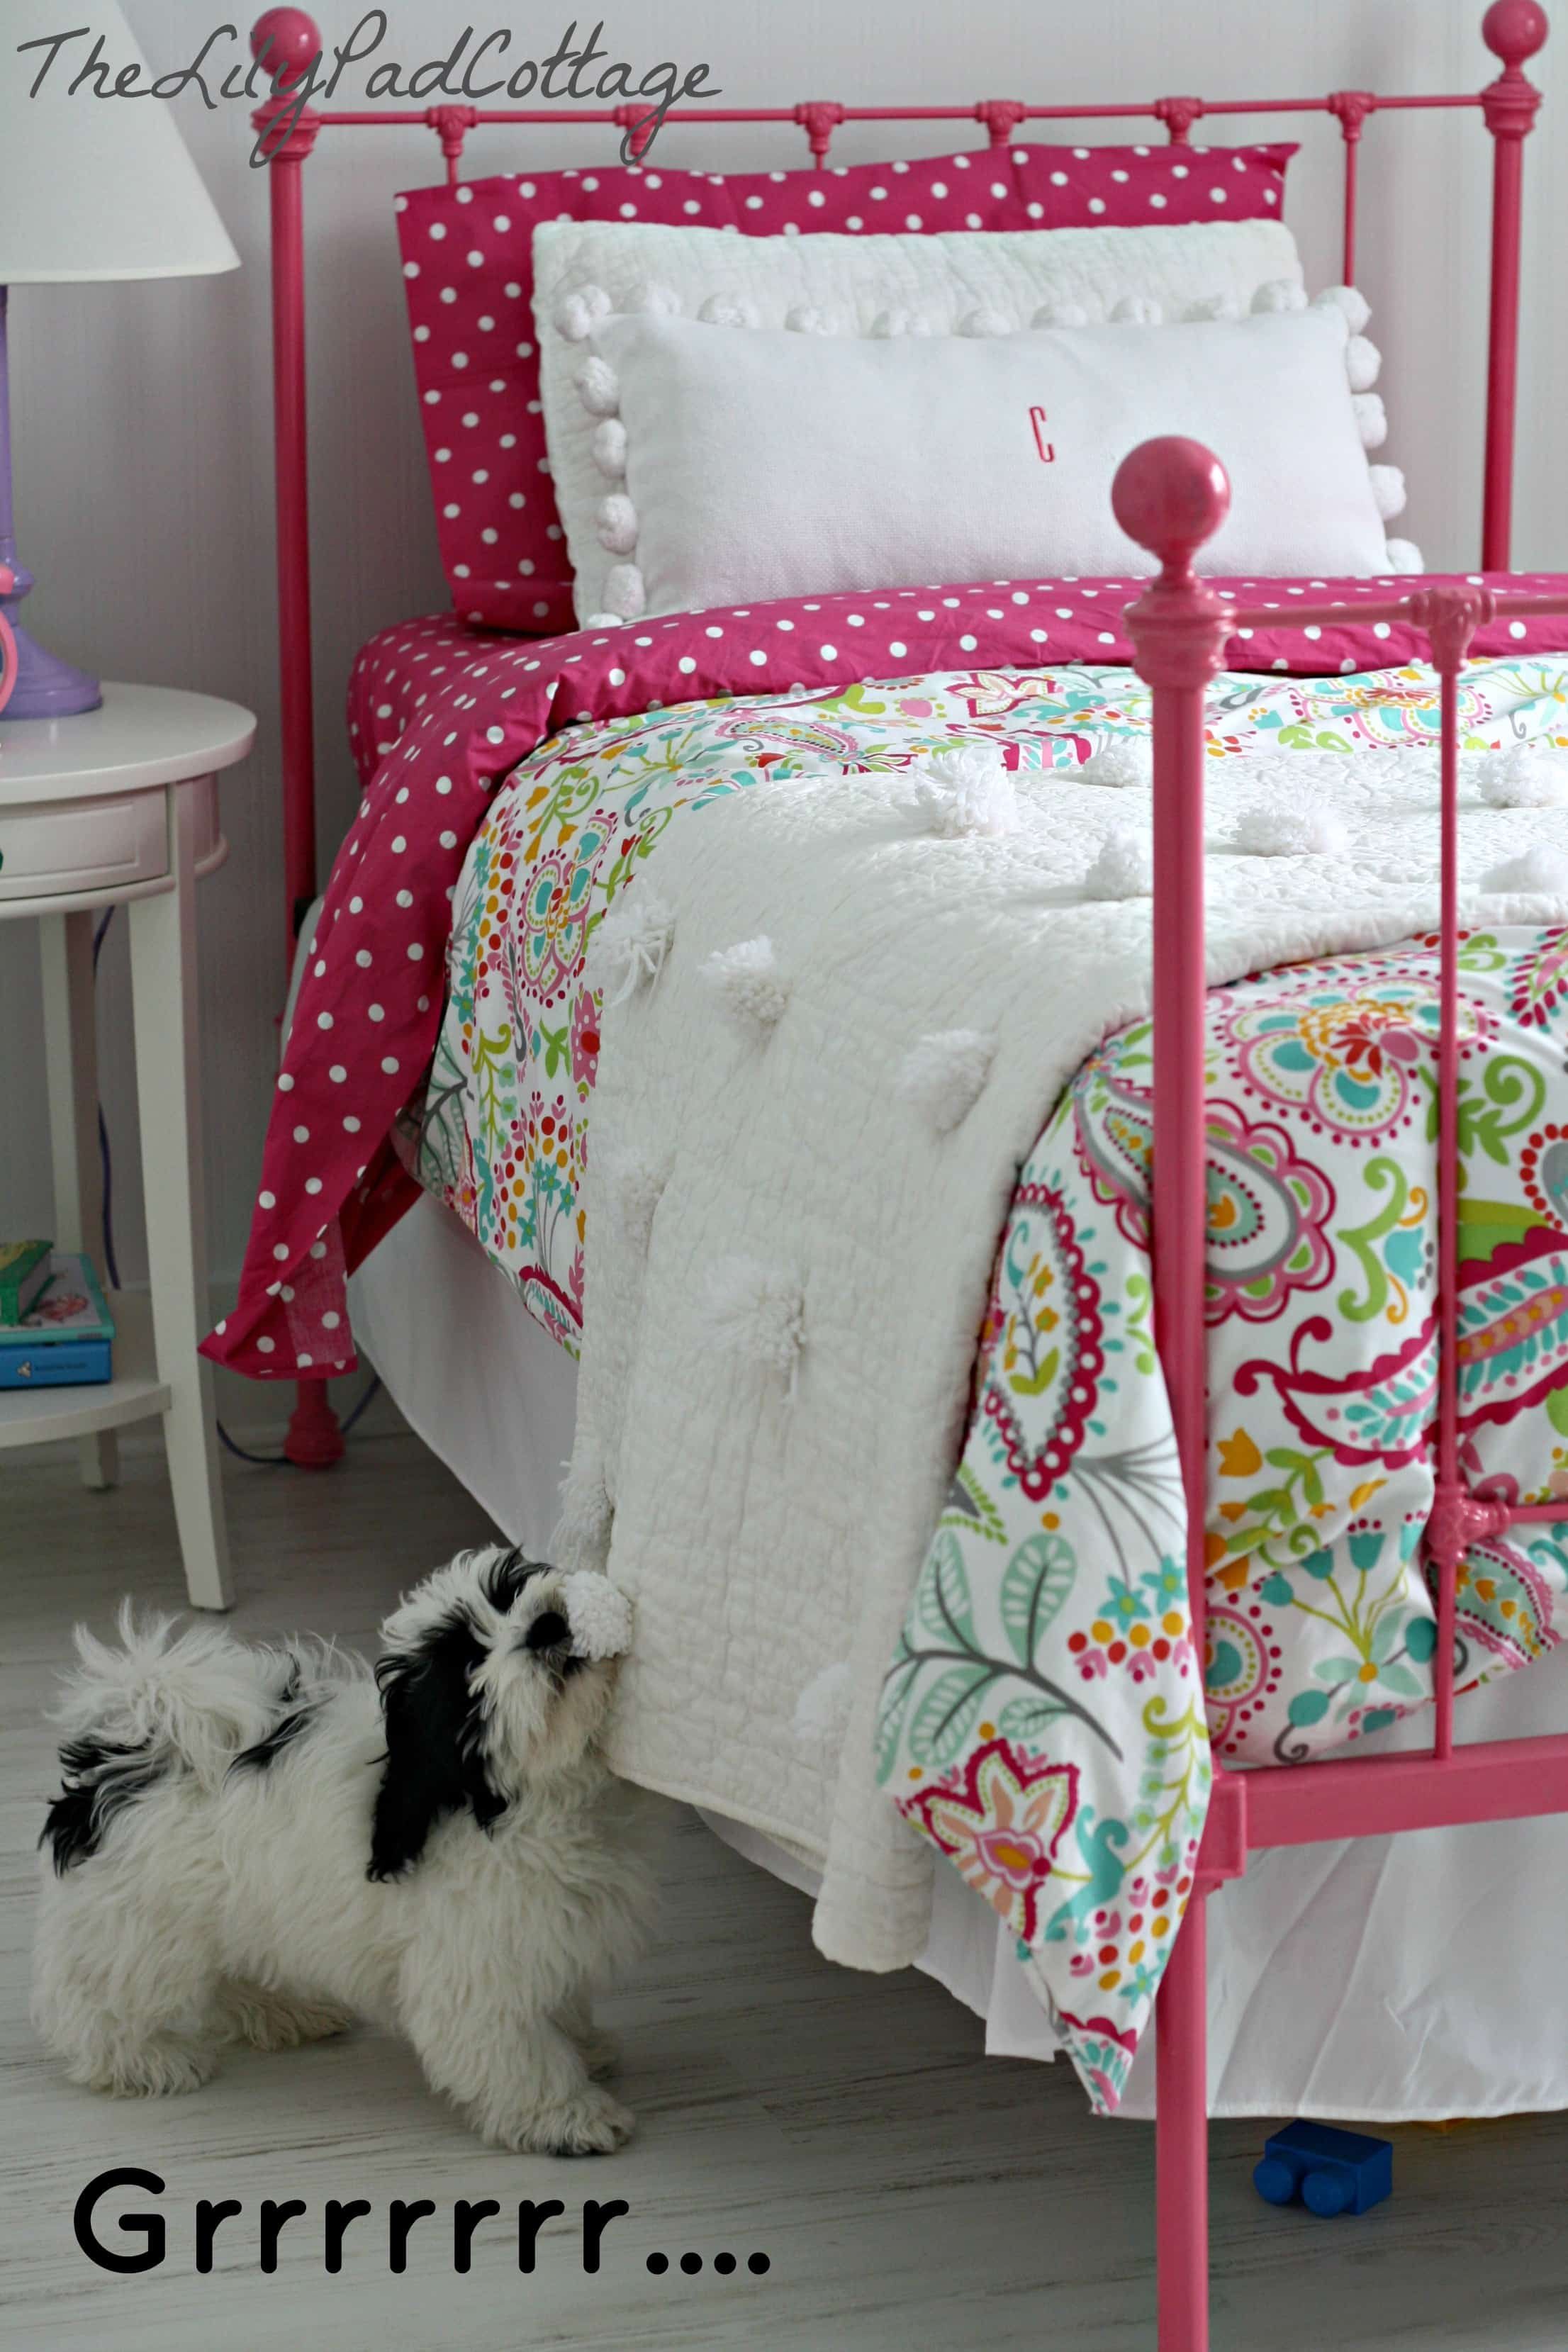 Easy No Sew Pom Pom Quilt - The Lilypad Cottage